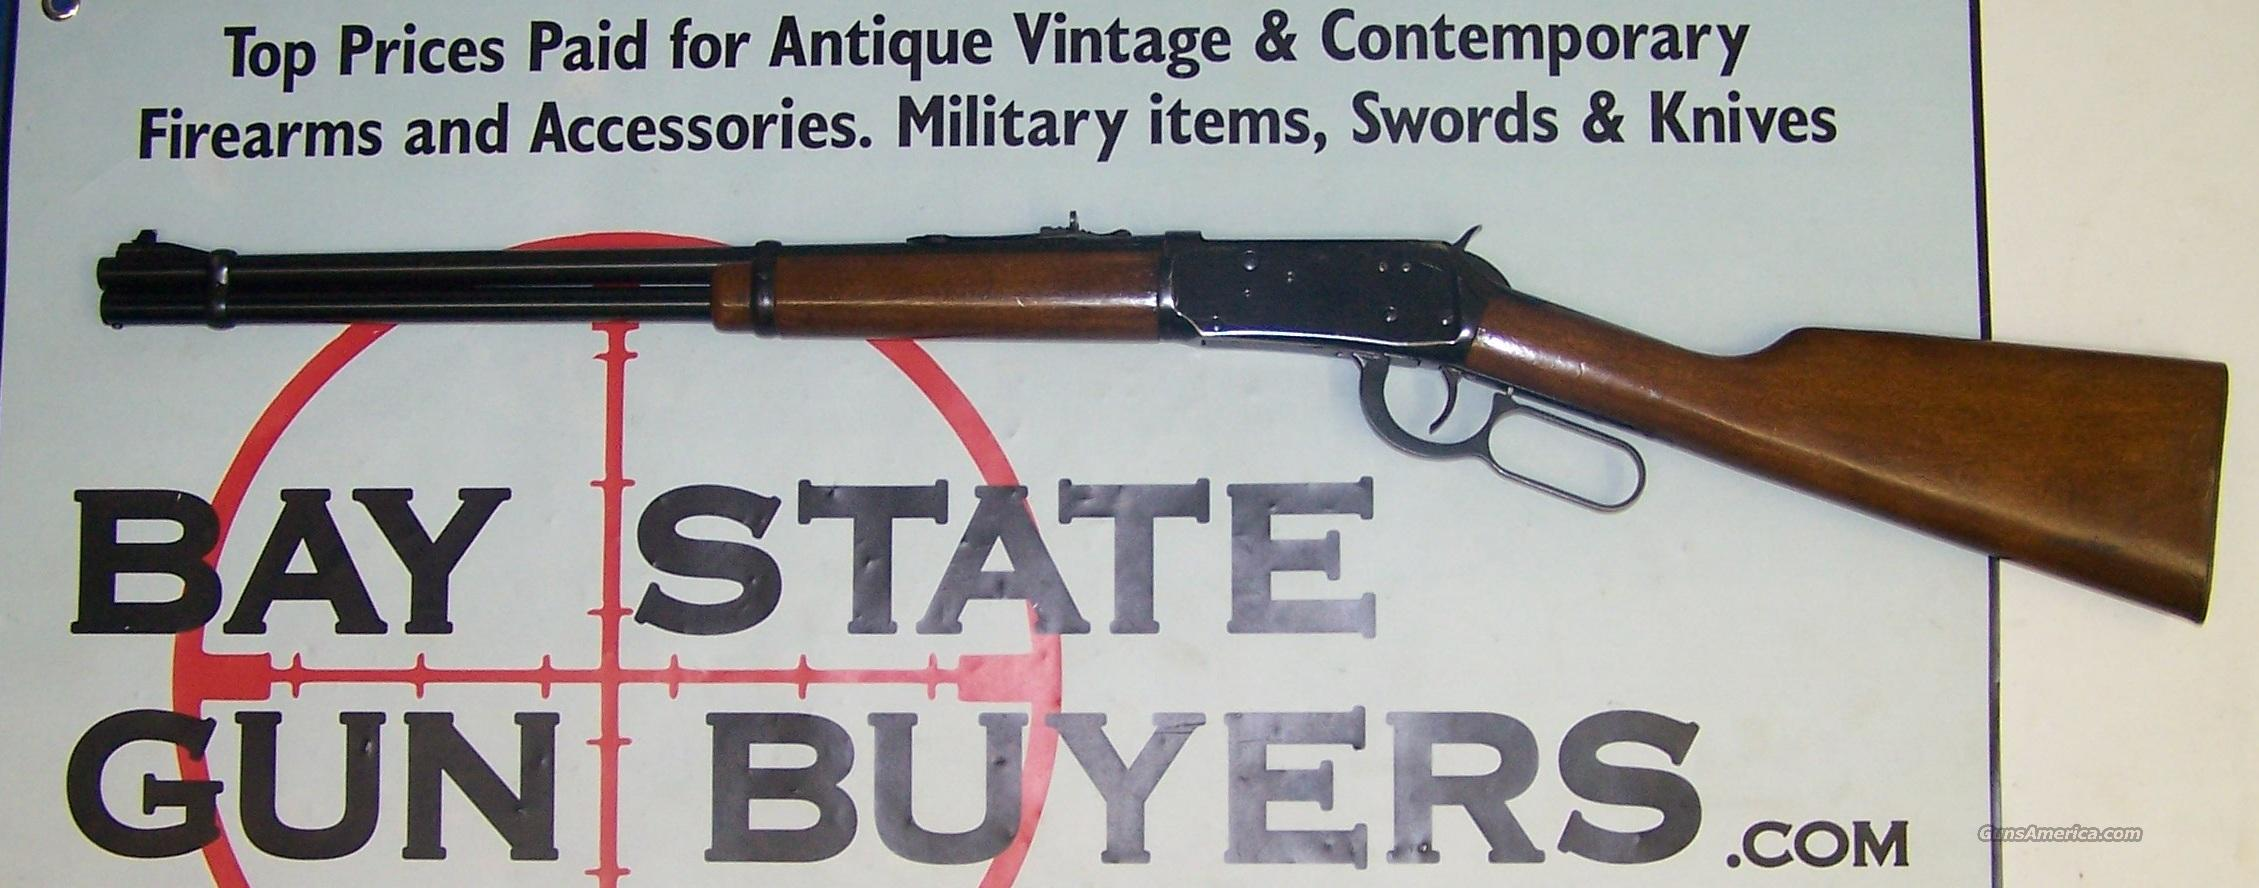 Winchester Model 94 lever action rifle 30-30 Win 1968 manufacture  Guns > Rifles > Winchester Rifles - Modern Lever > Model 94 > Post-64